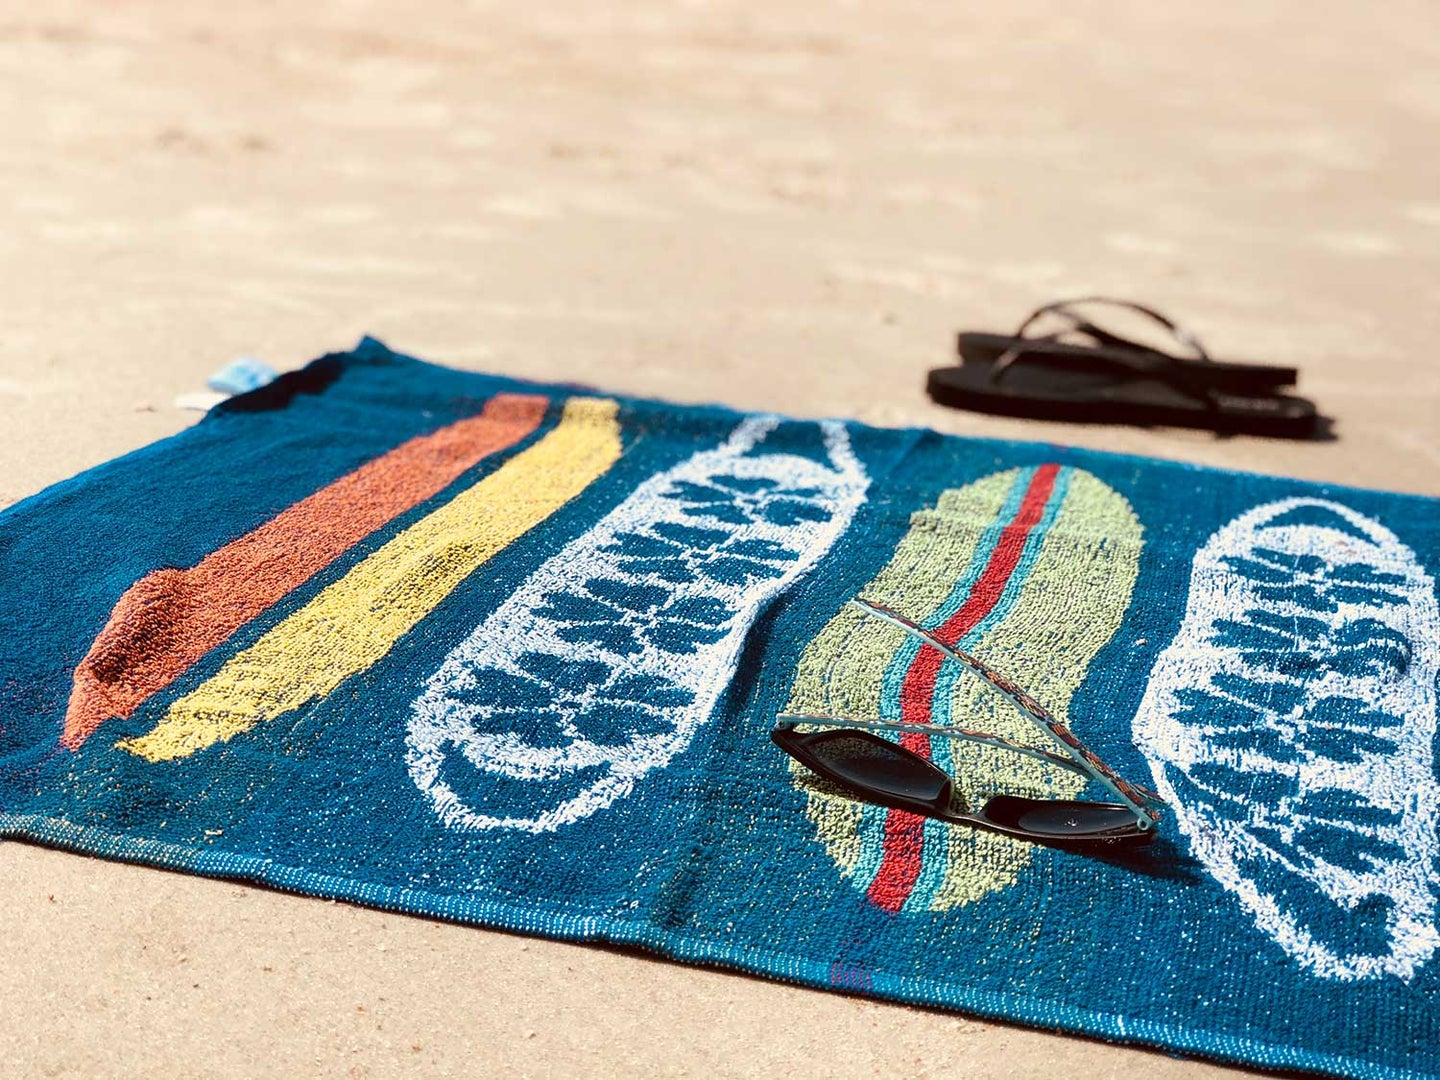 Towel on beach with flip-flop sandals and sunglasses.